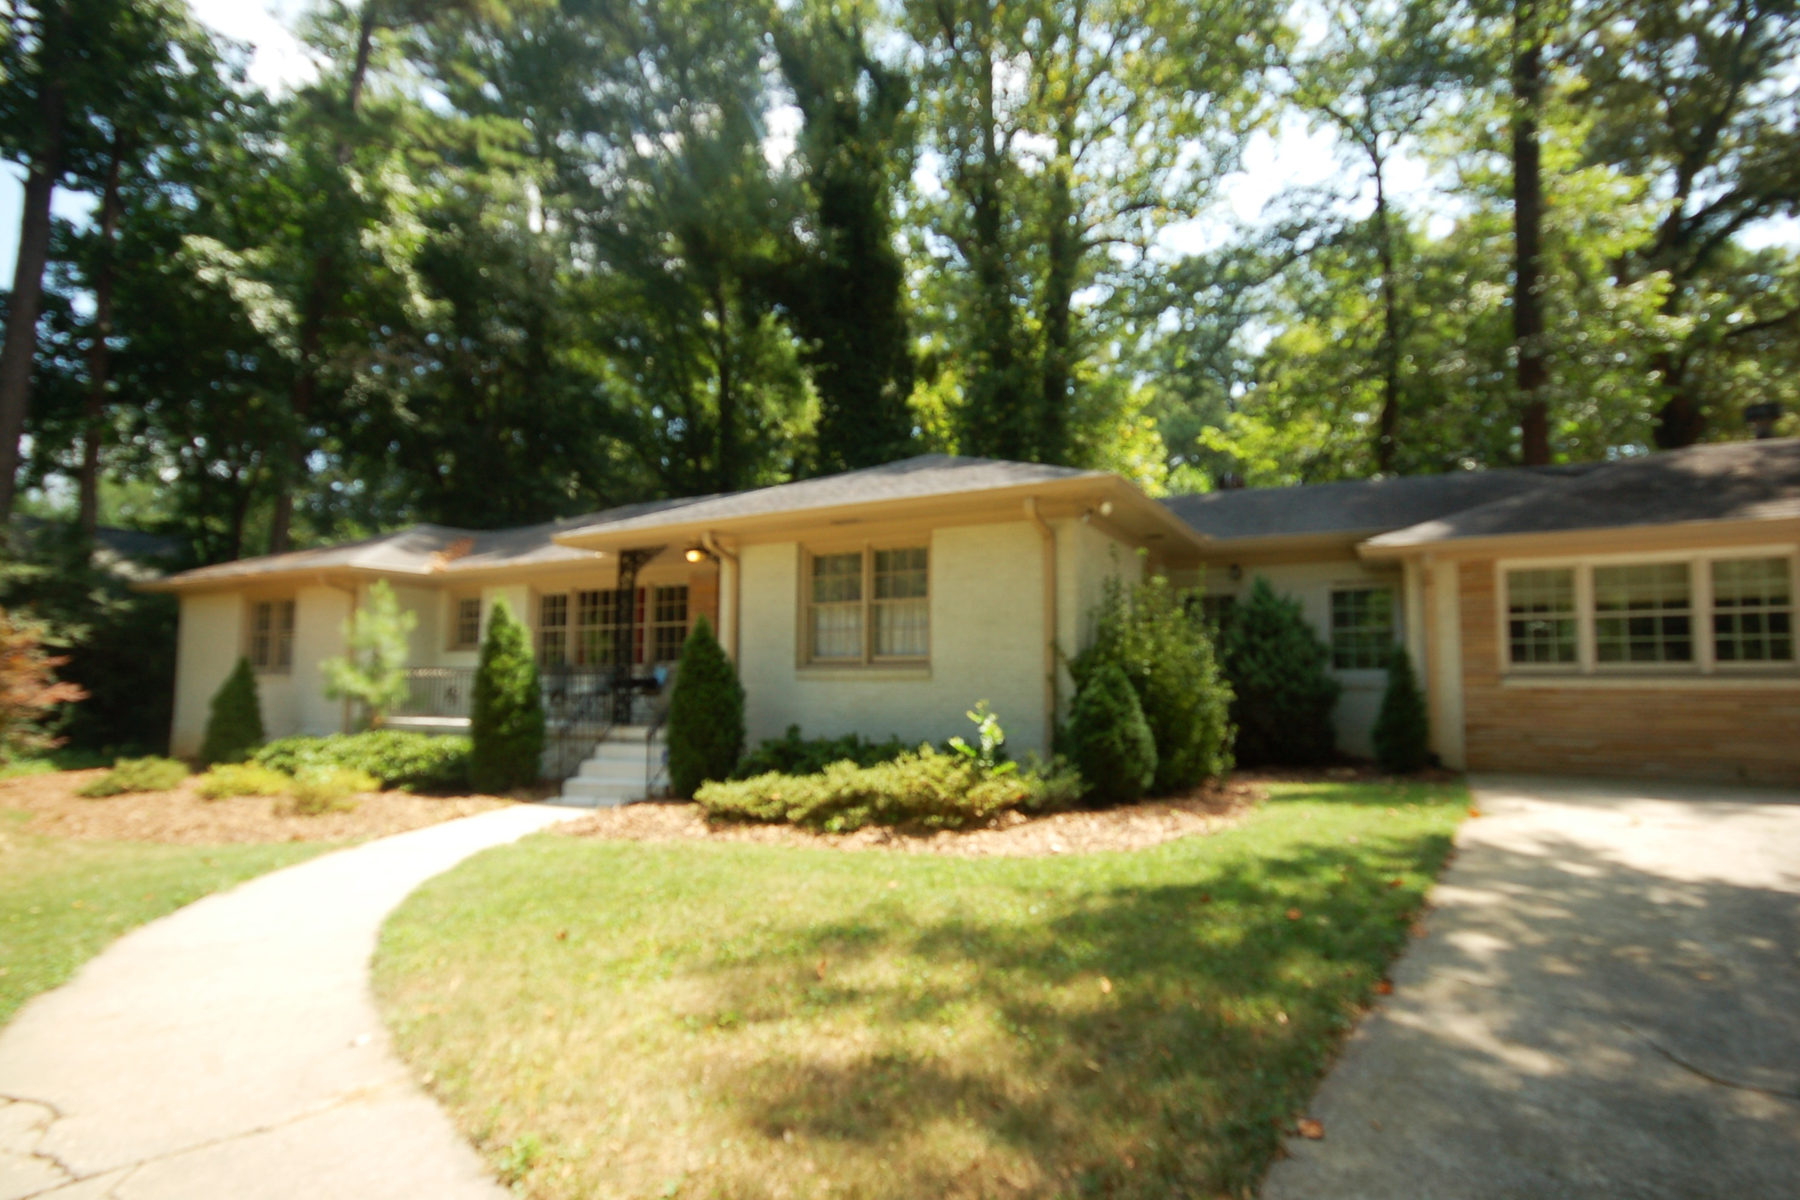 Casa Unifamiliar por un Venta en Great Opportunity In Buckhead 3851 Wieuca Road Buckhead, Atlanta, Georgia 30342 Estados Unidos